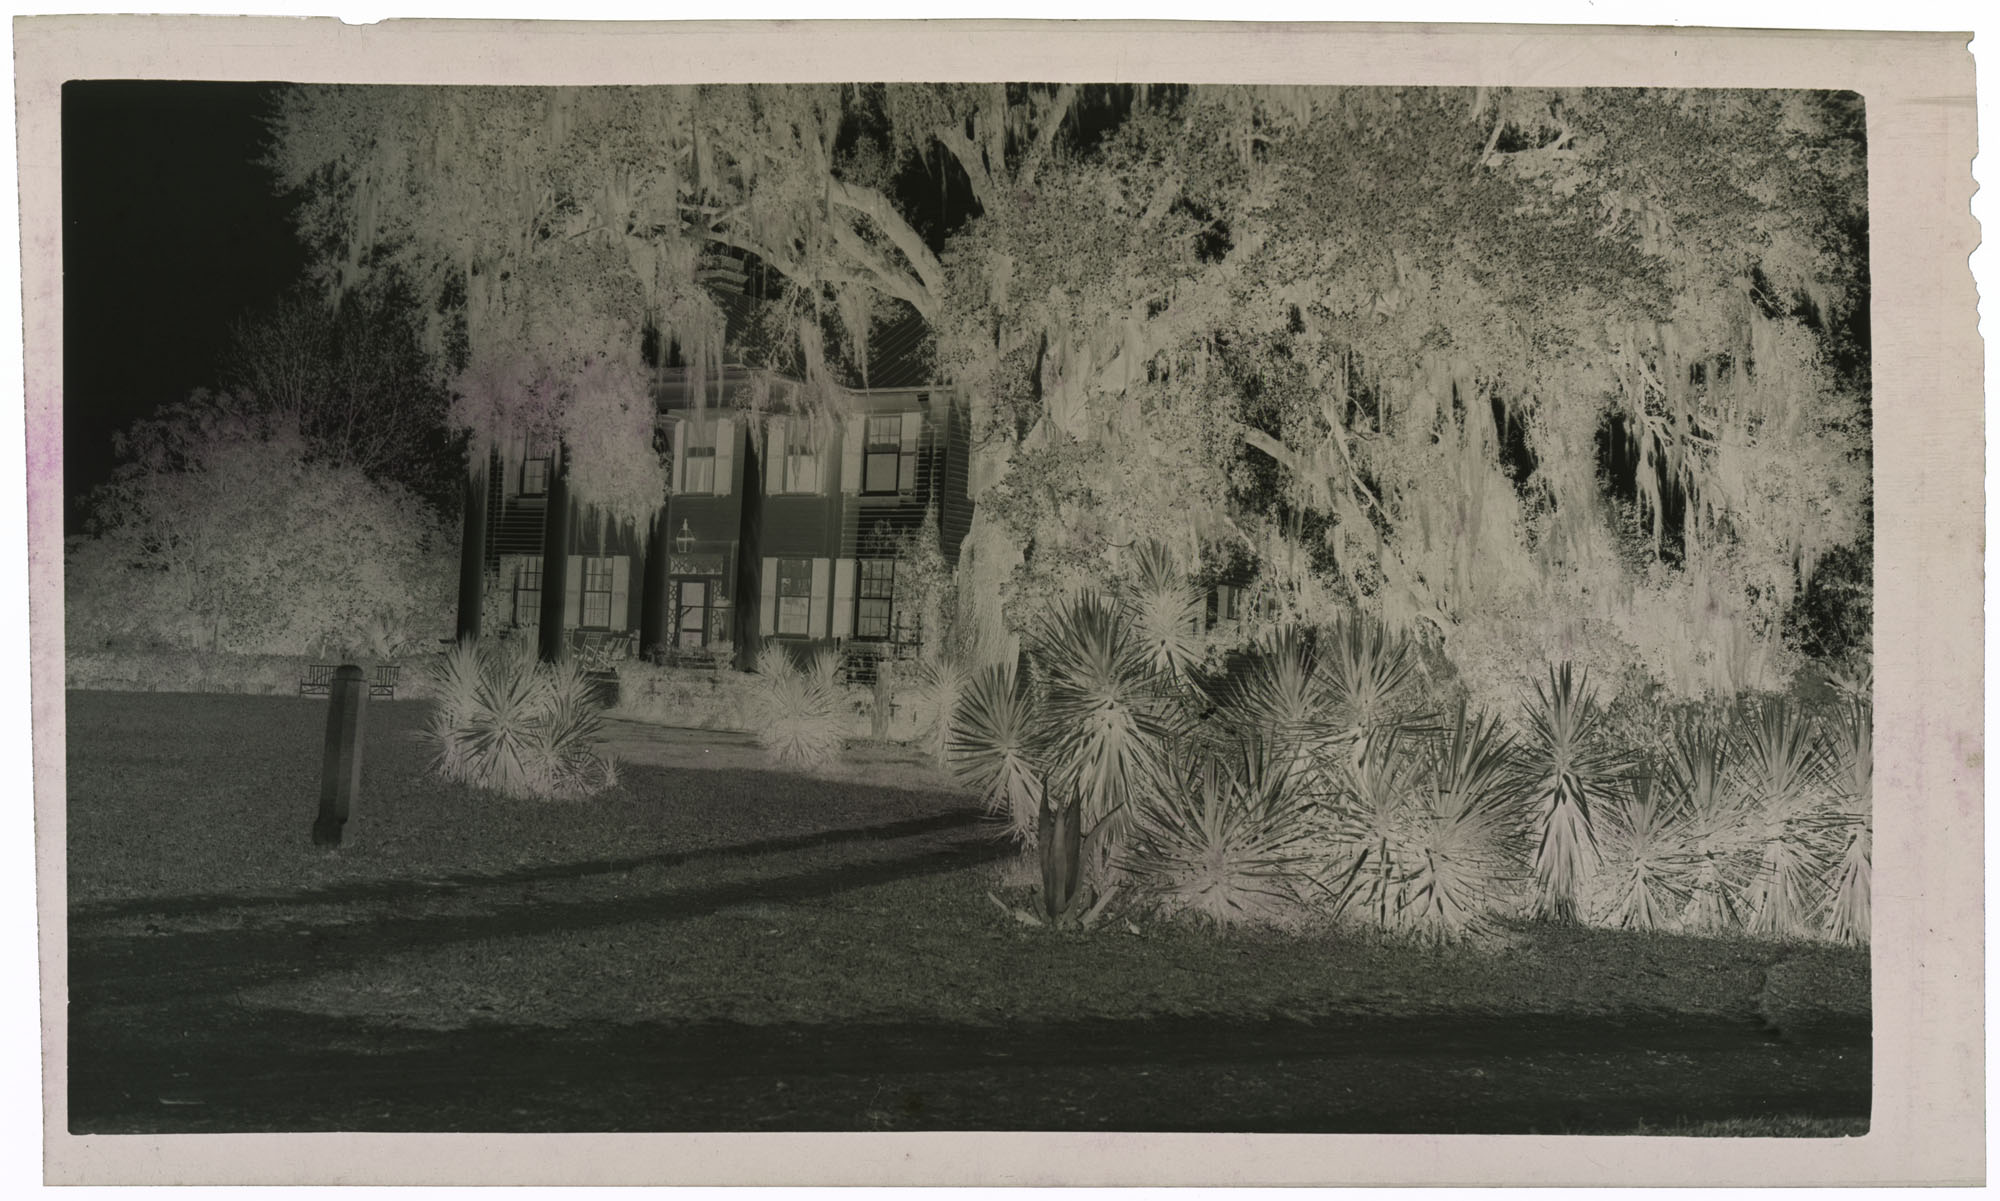 Negative of Gippy Plantation Mansion